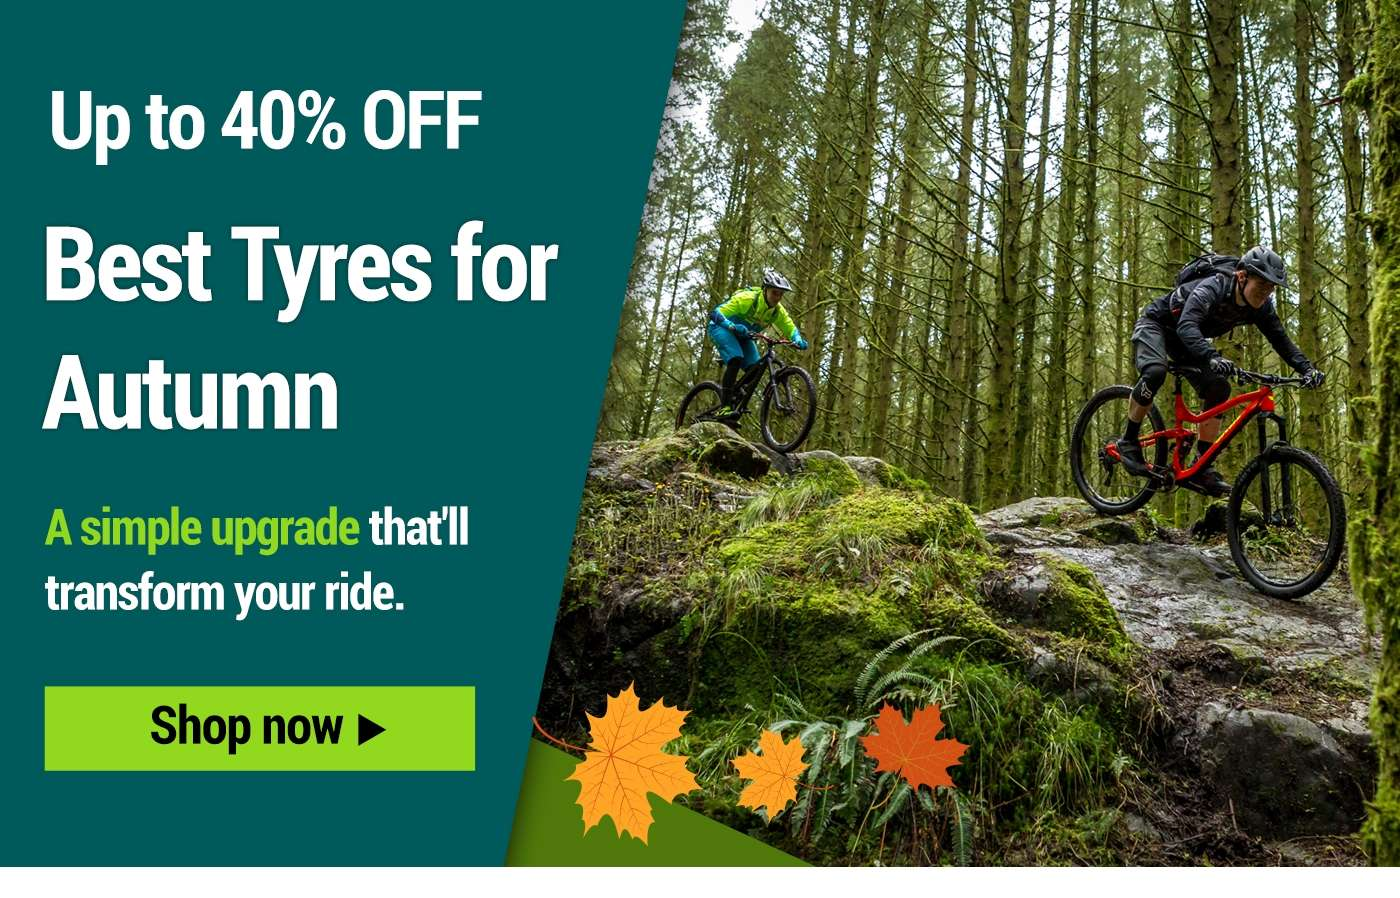 up to 40% off best tyres